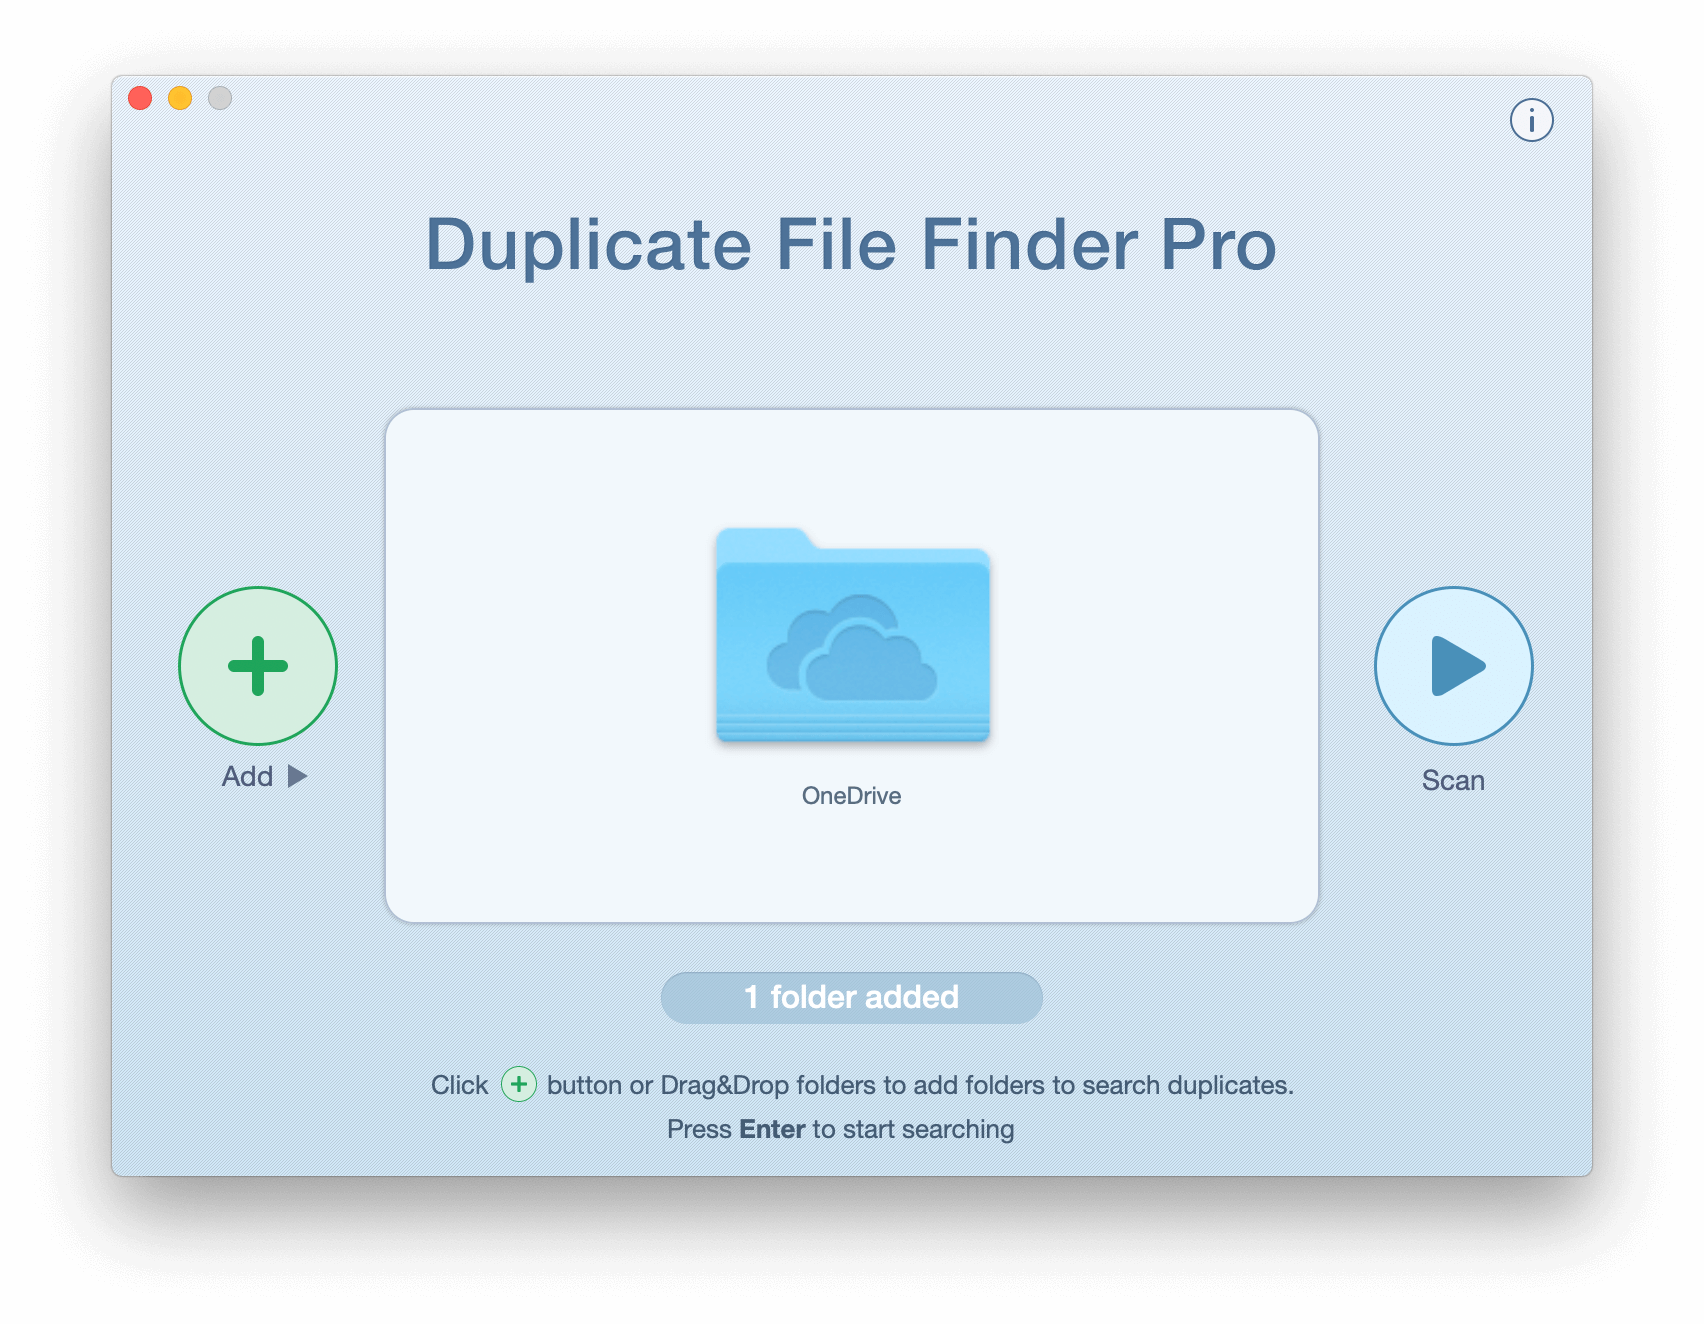 Duplicate File Finder window showing OneDrive folder selected for scan